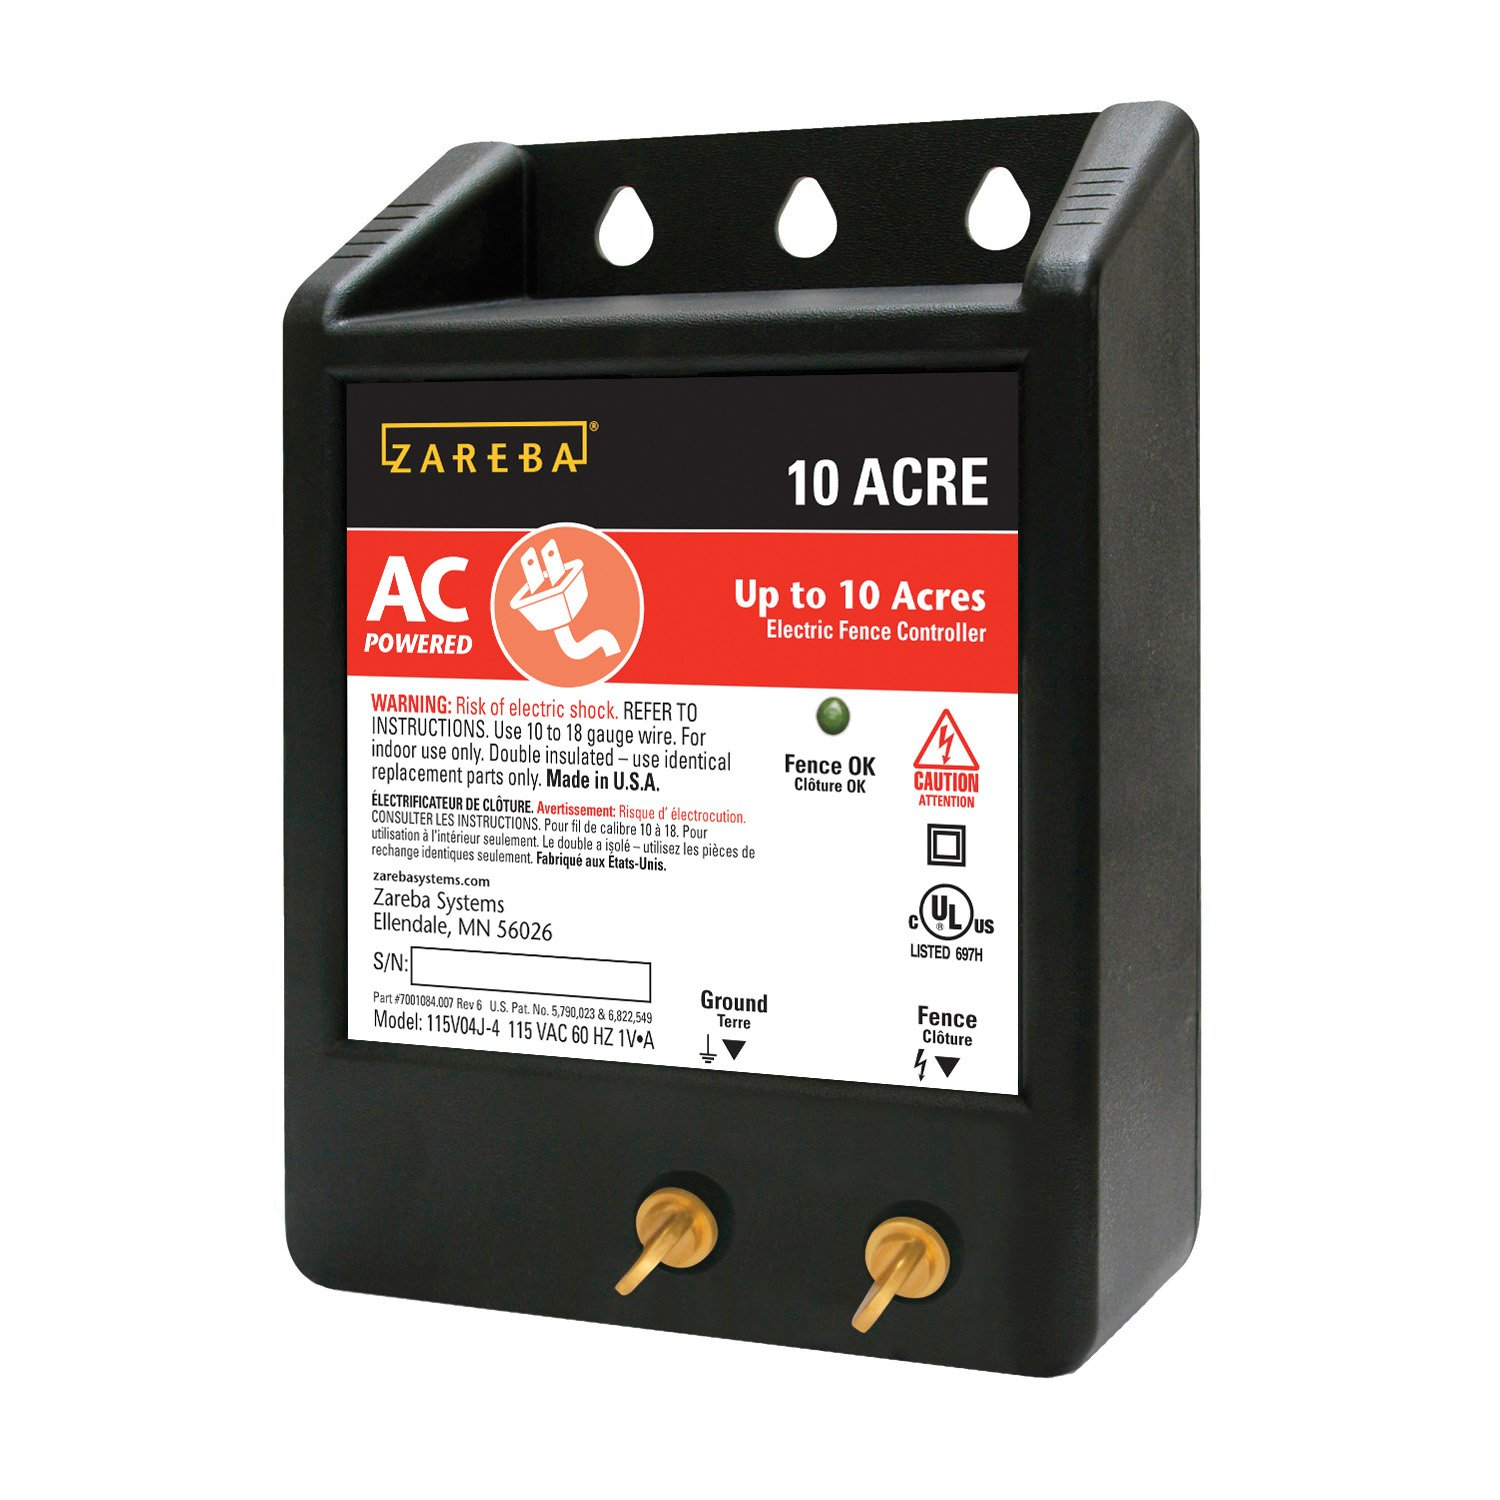 Amazon zareba 10 acre ac powered solid state fence charger amazon zareba 10 acre ac powered solid state fence charger livestock equipment garden outdoor sciox Choice Image